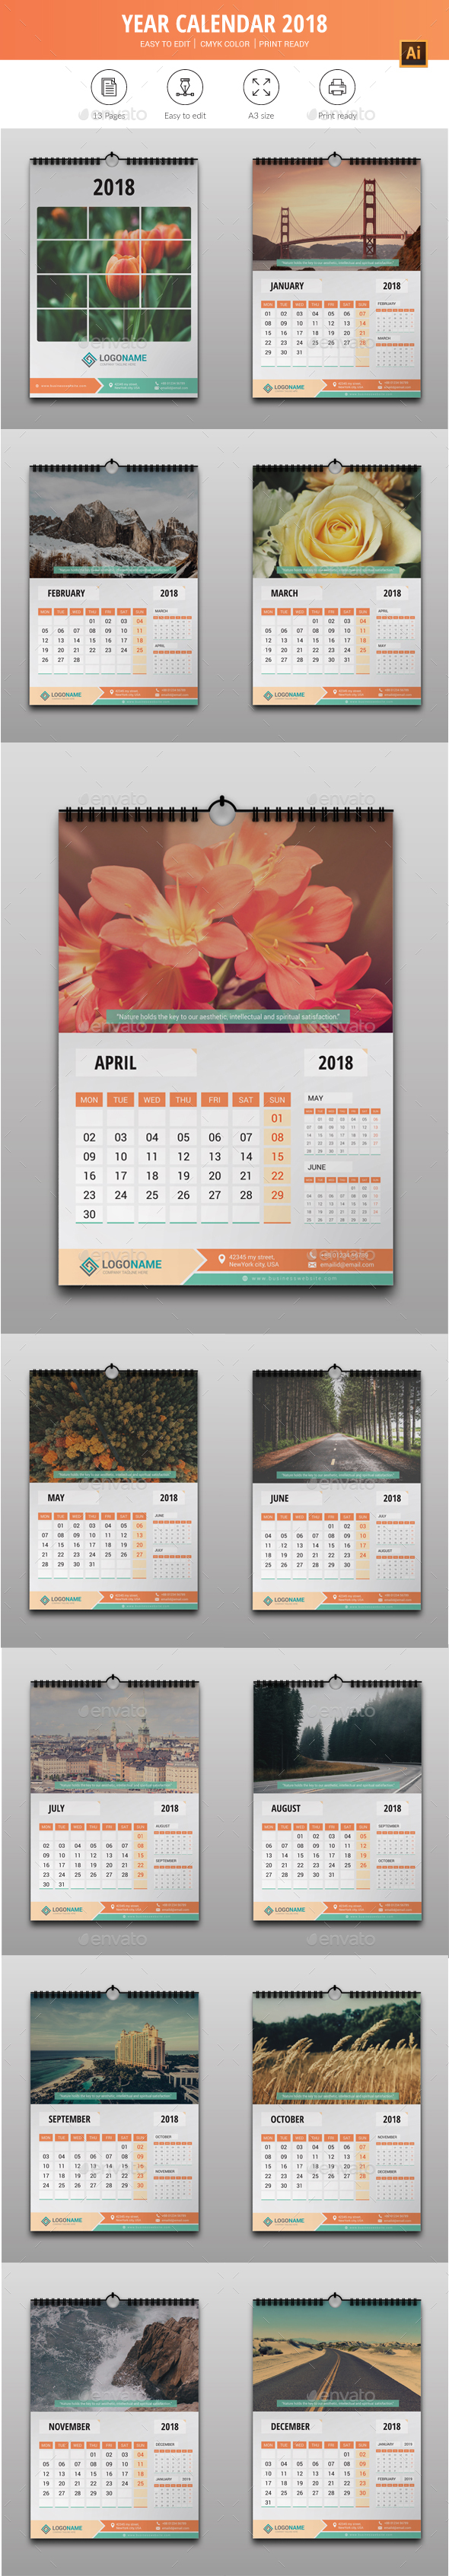 Year Calendar 2018 - Calendars Stationery